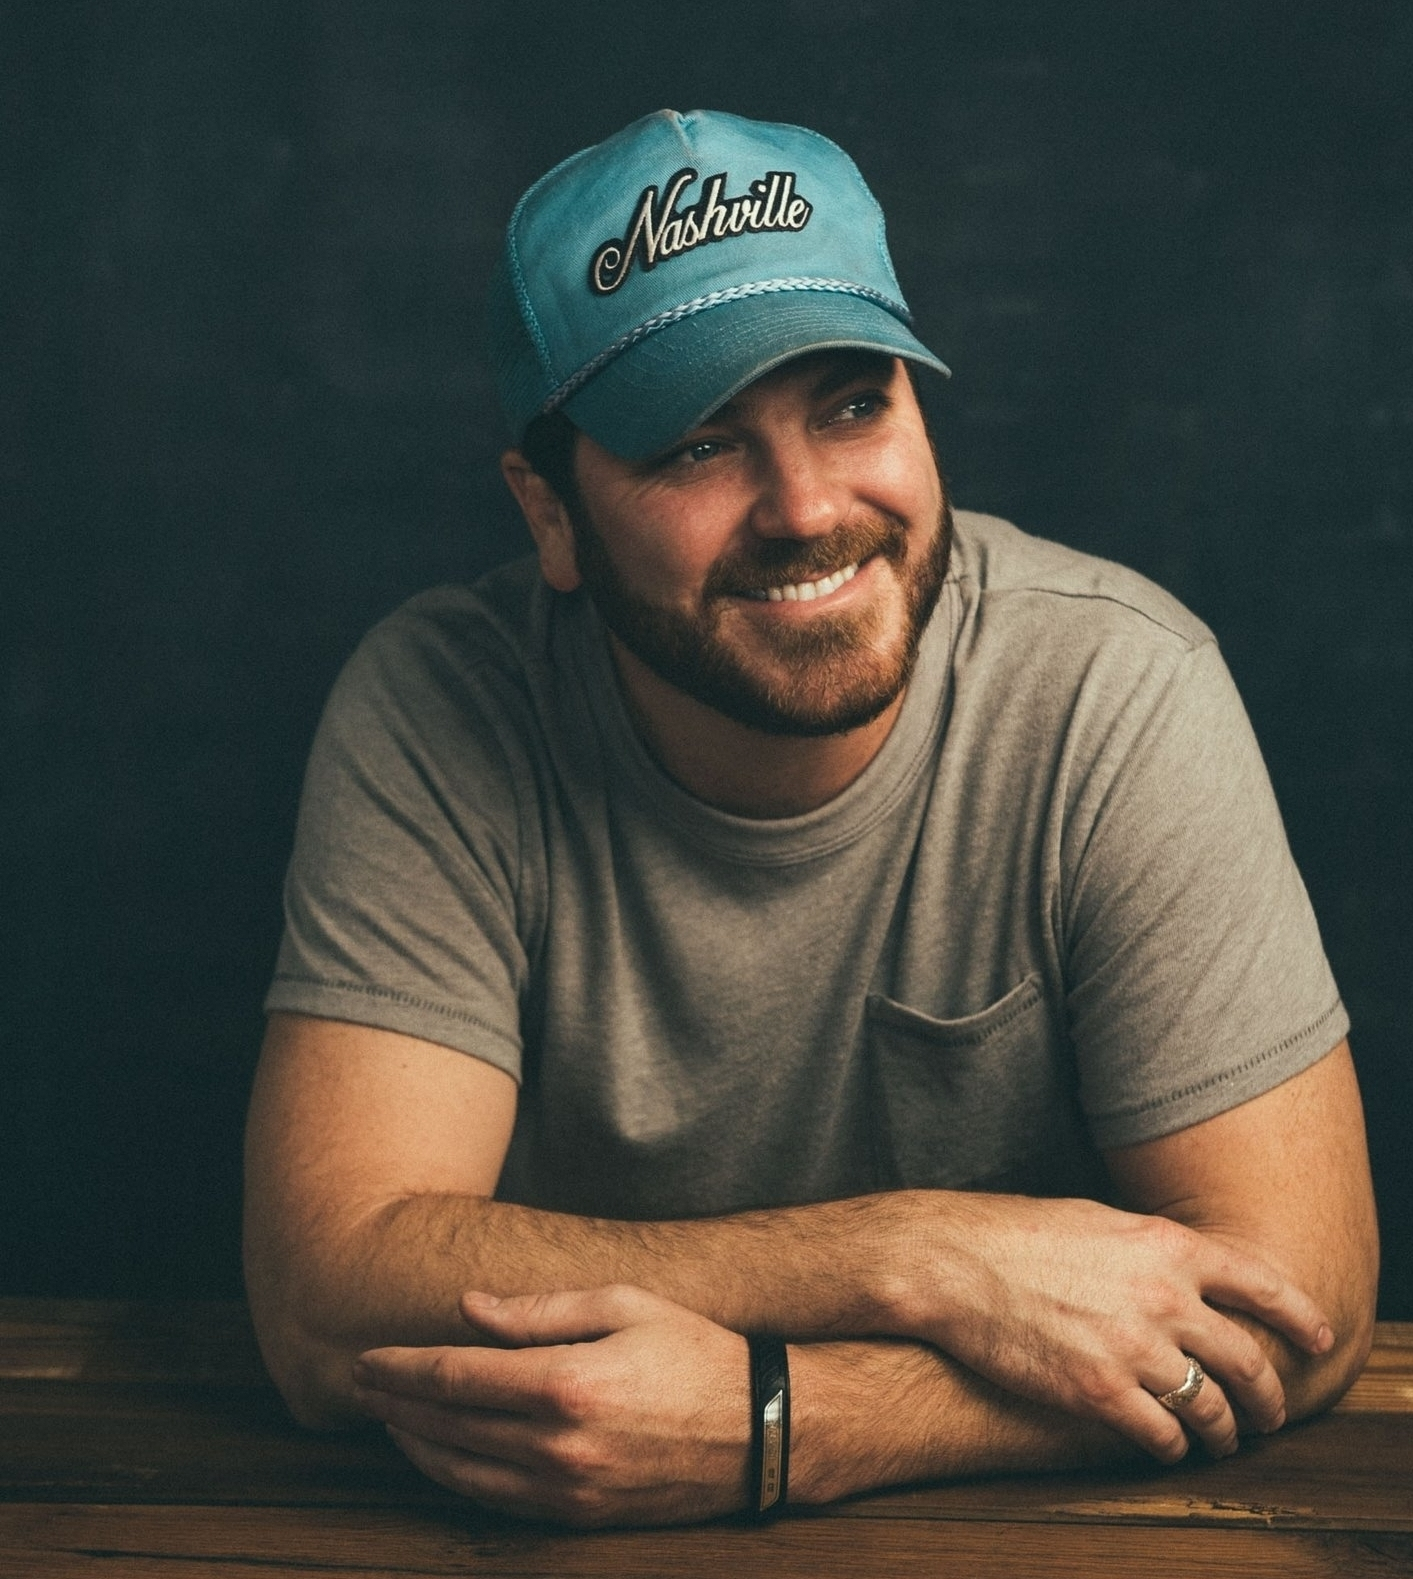 TYLER REEVE - Alabama bred Tyler Reeve is a Nashville based songwriting powerhouse who over the past few years has found great success as an artist & writer in Music City. Besides touring the country as an artist Tyler has also written hits for Brett Young (